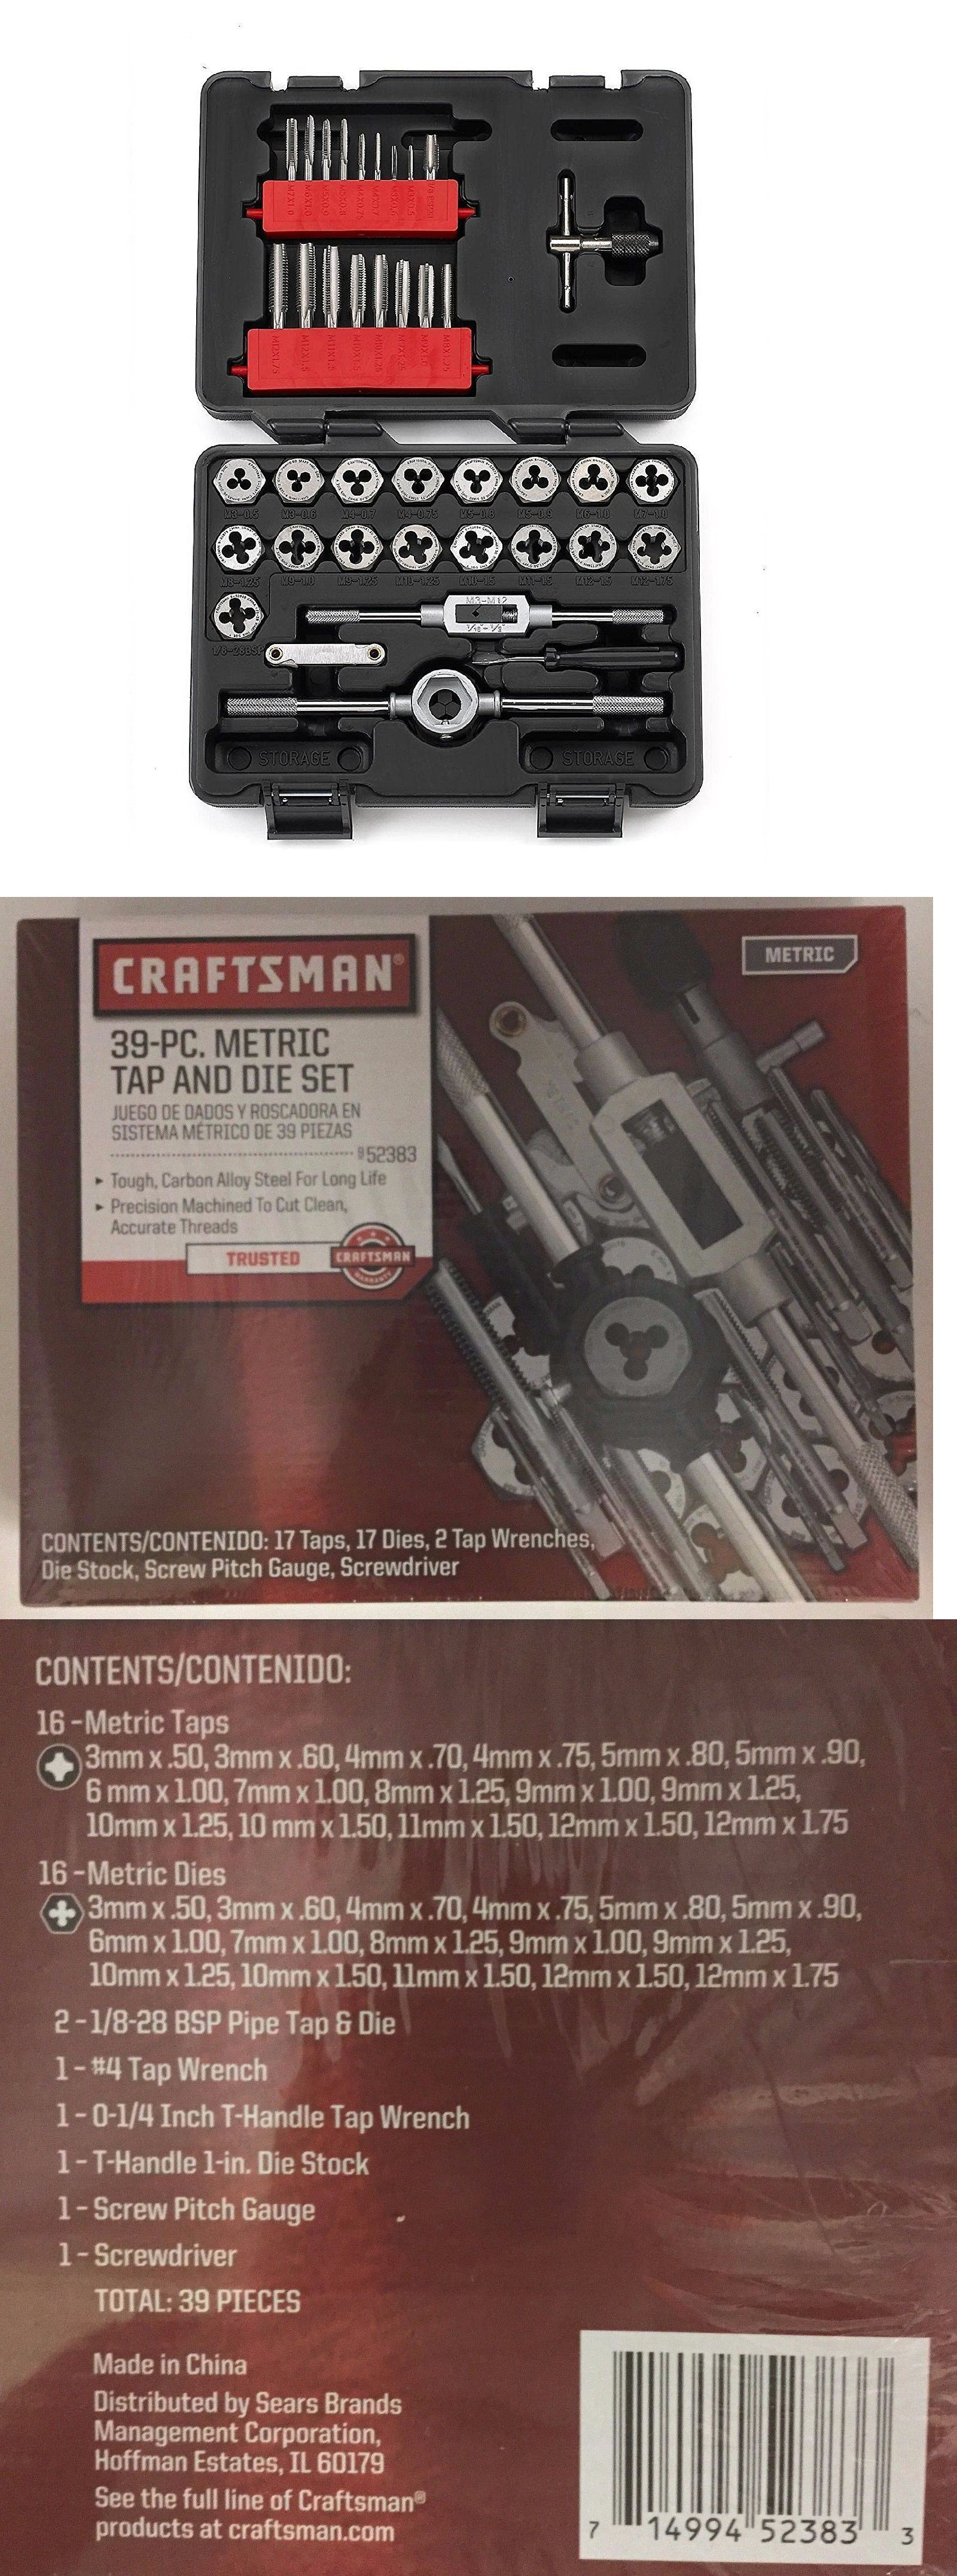 Taps and dies new craftsman piece metric tap and die tough